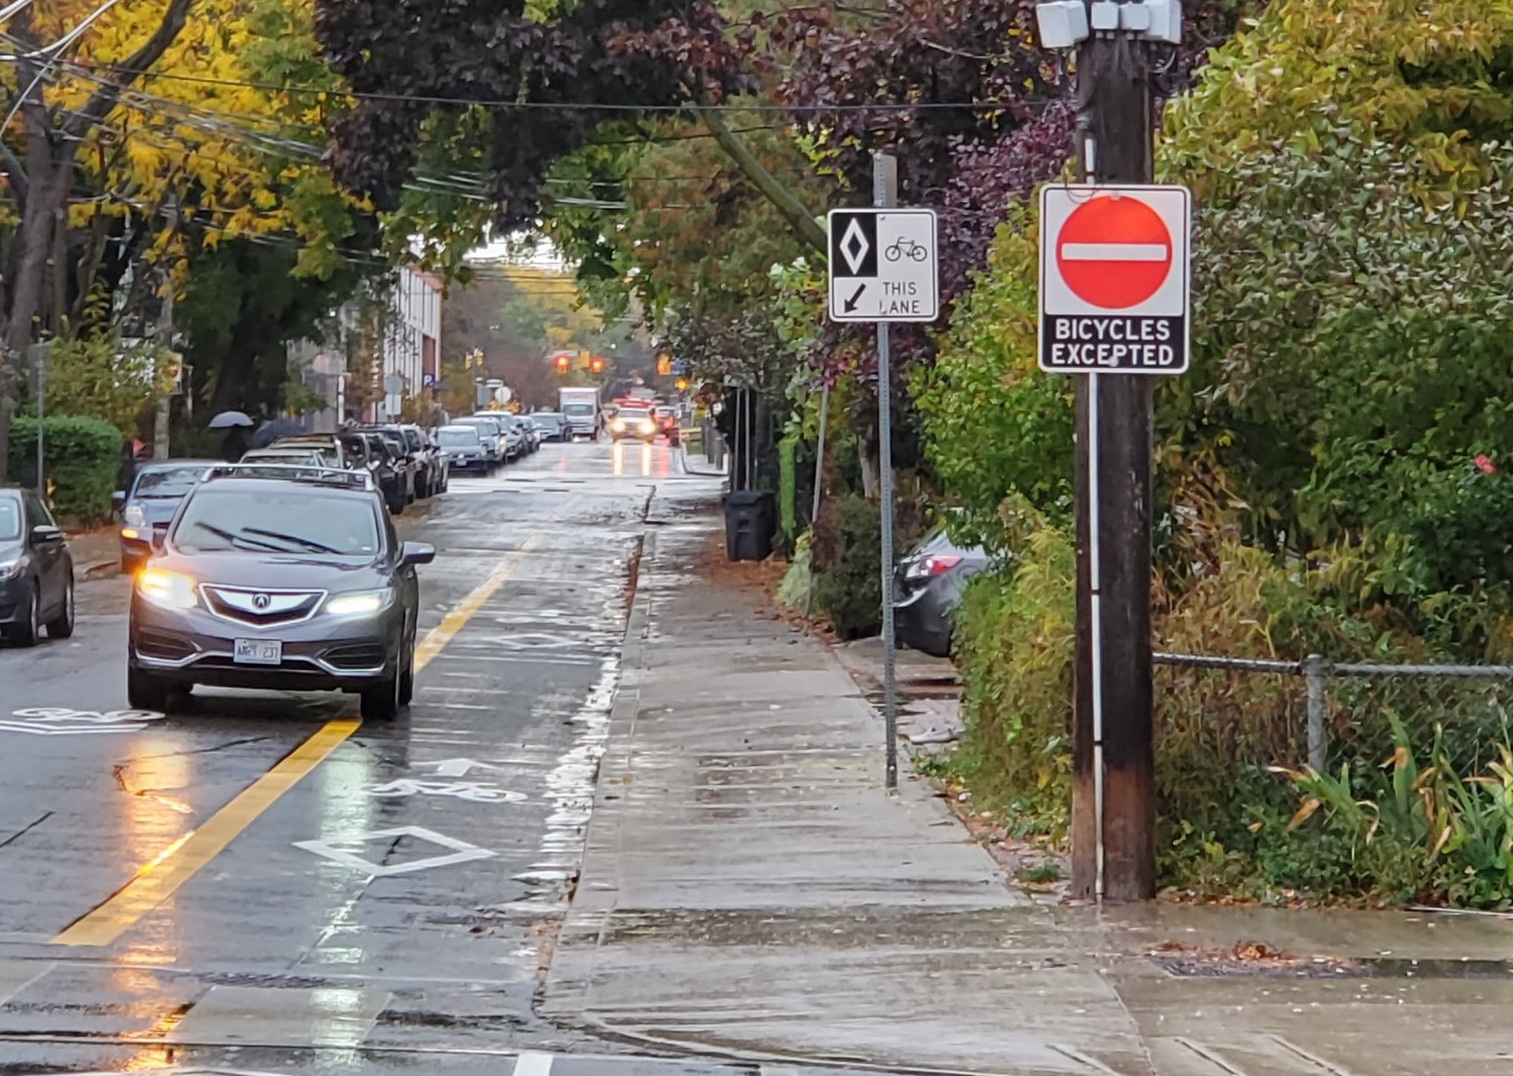 """A sign says """"Bikes this lane"""" and a yellow line separates the rest of the road from the bike lane."""